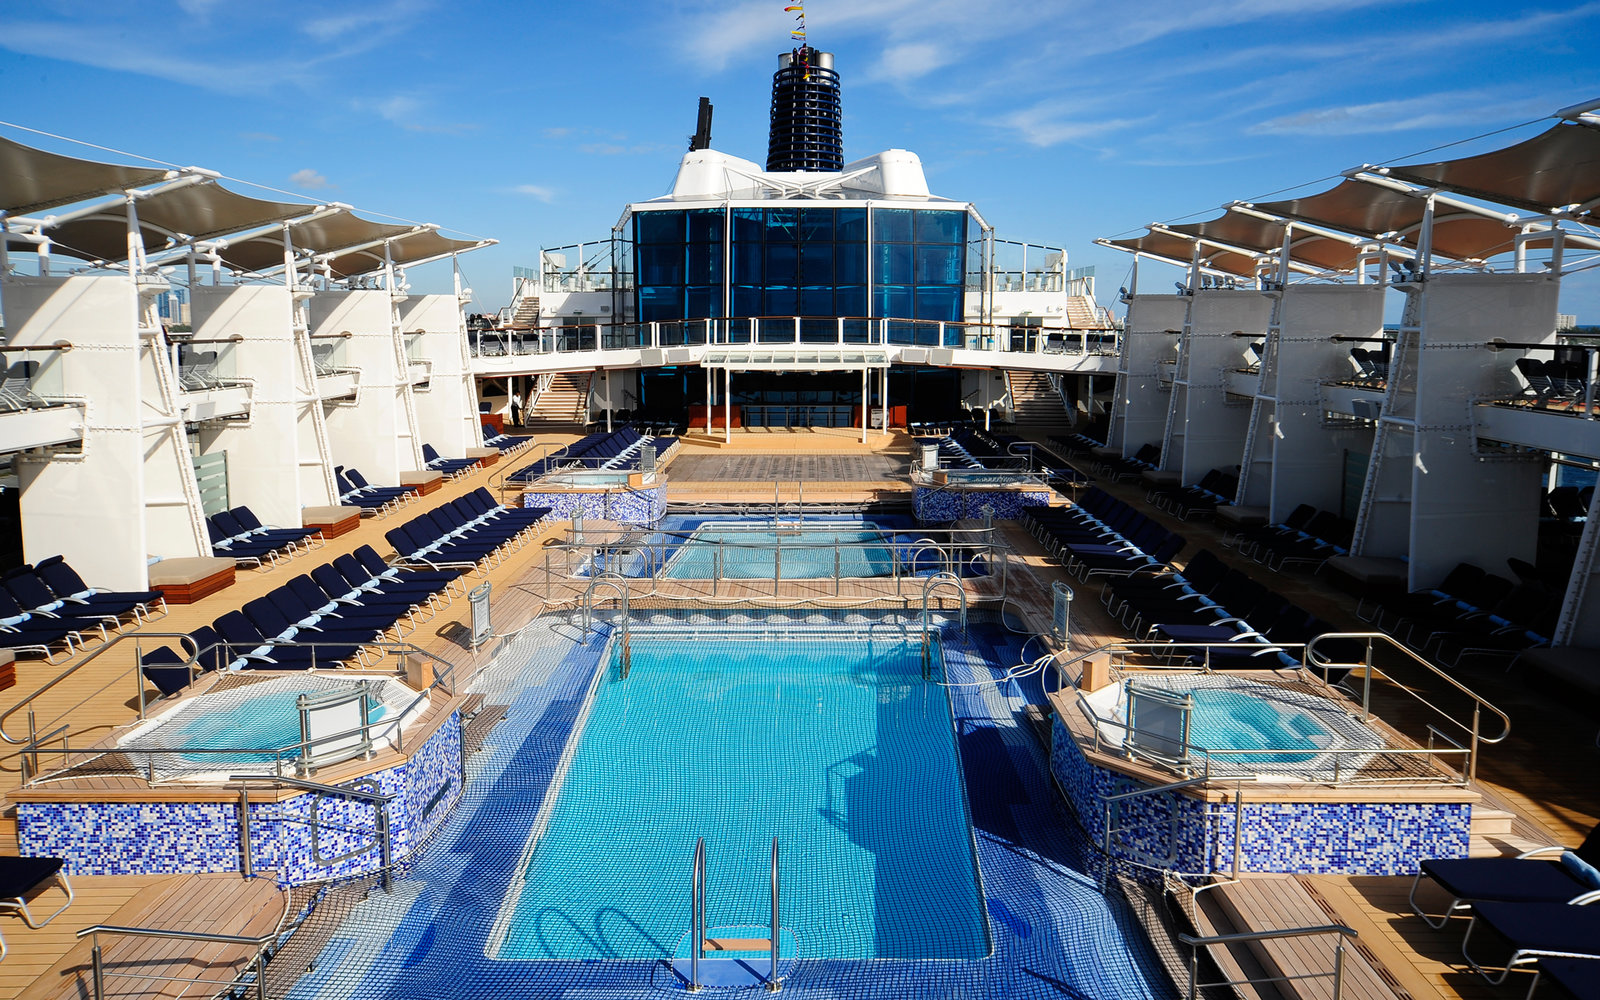 12 Cruise Ships With Incredible Pools